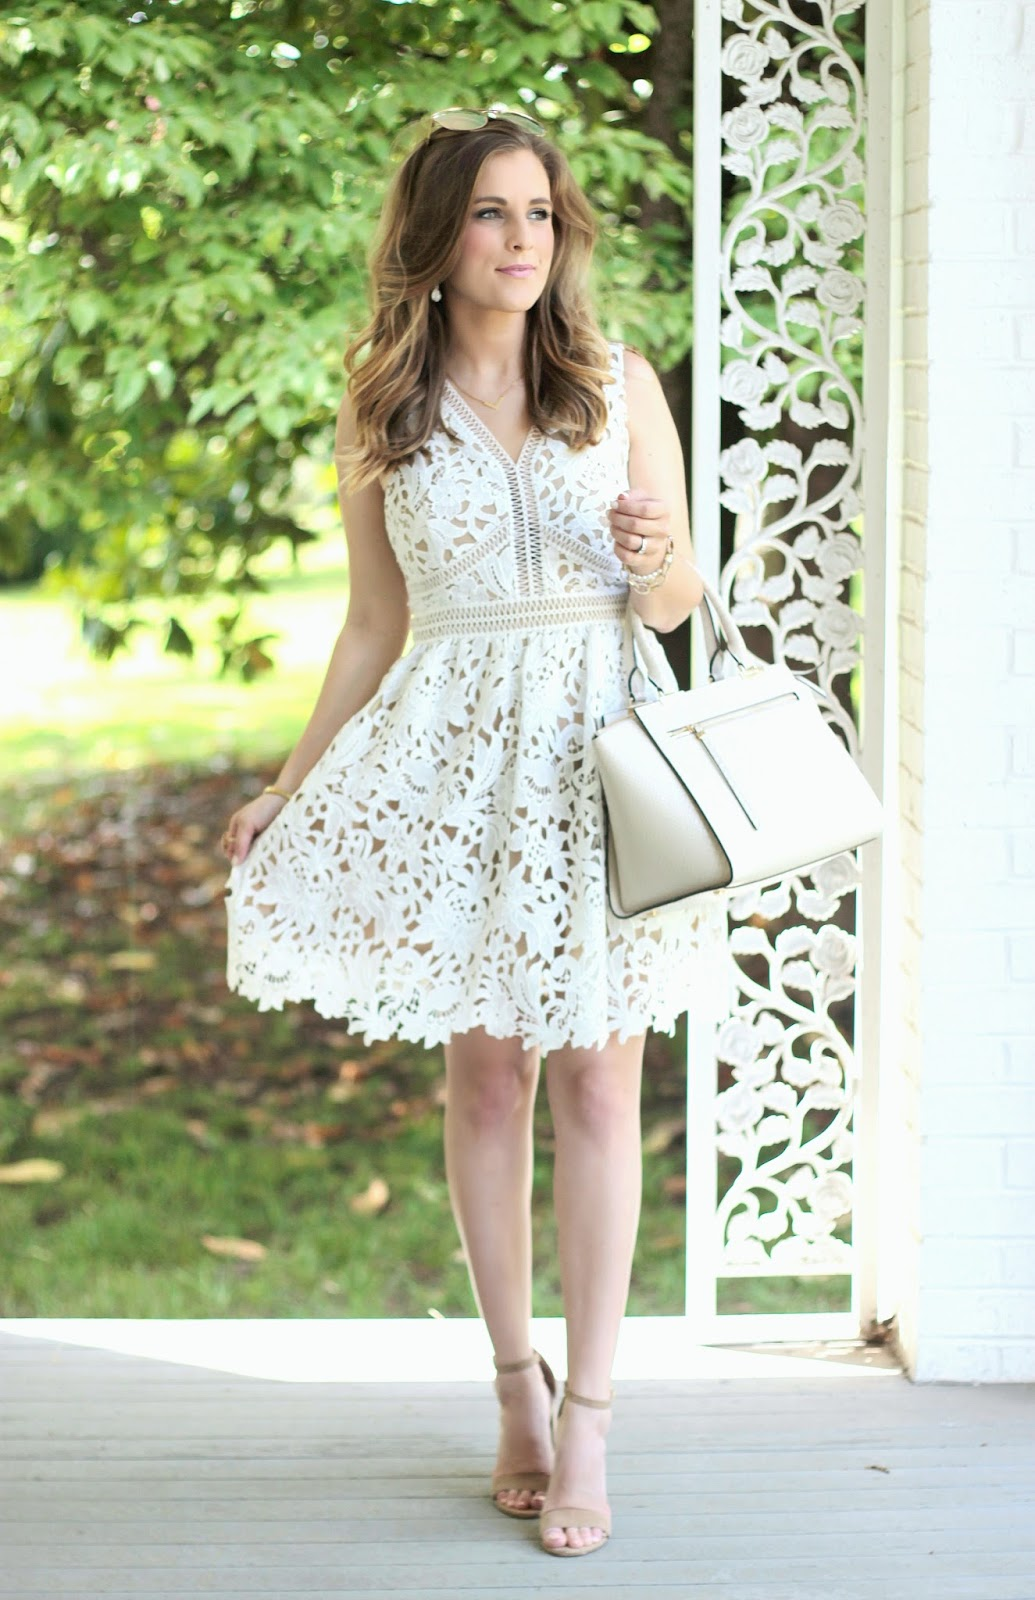 The Little White Lace Dress {Only $65!}